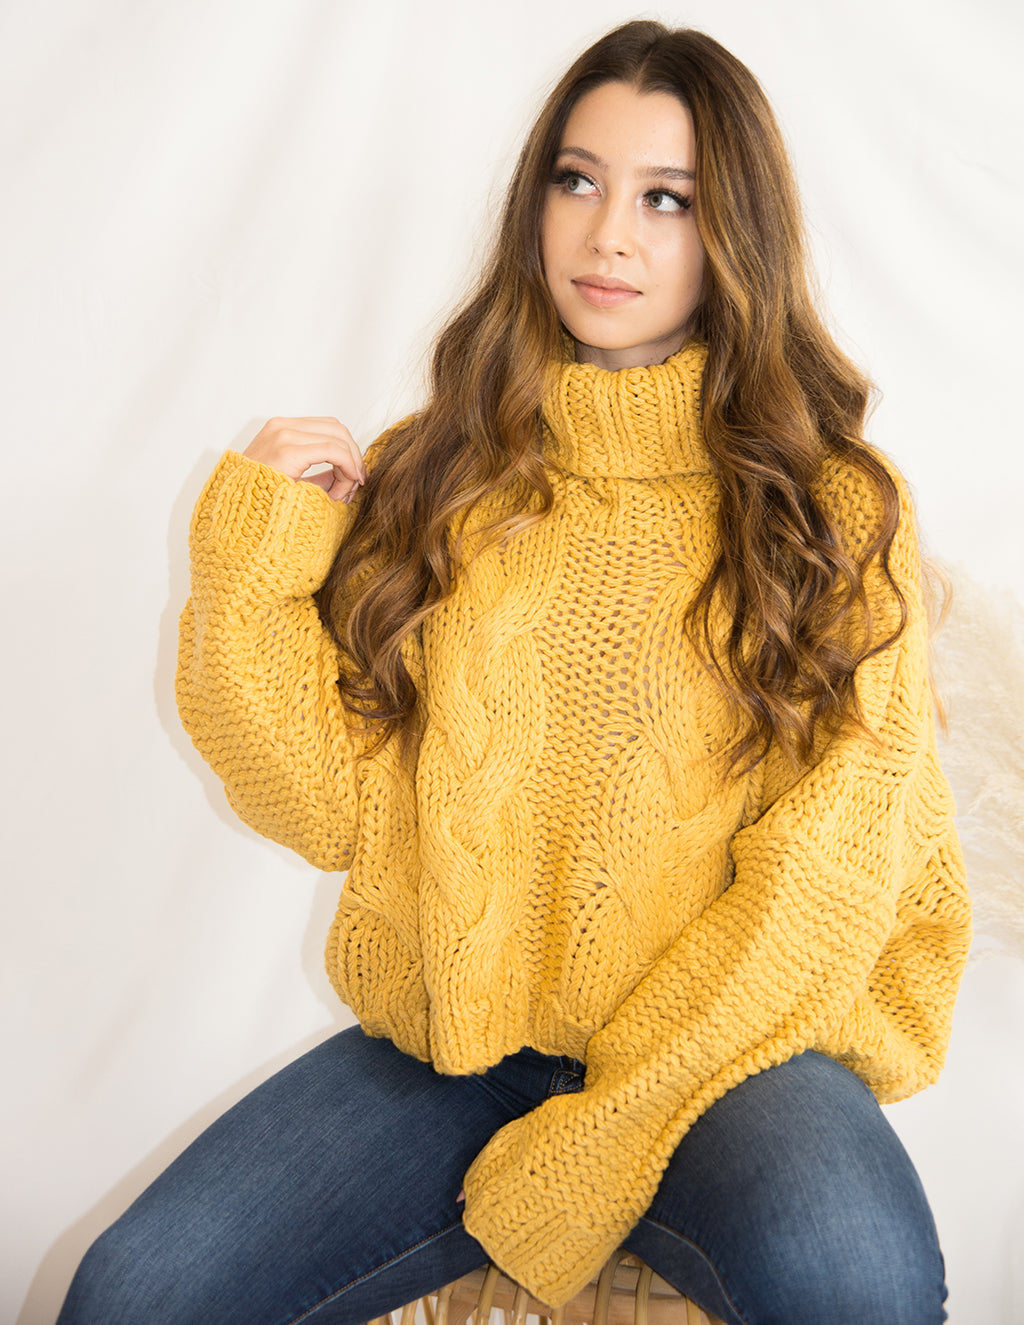 Golden Hour Sweater